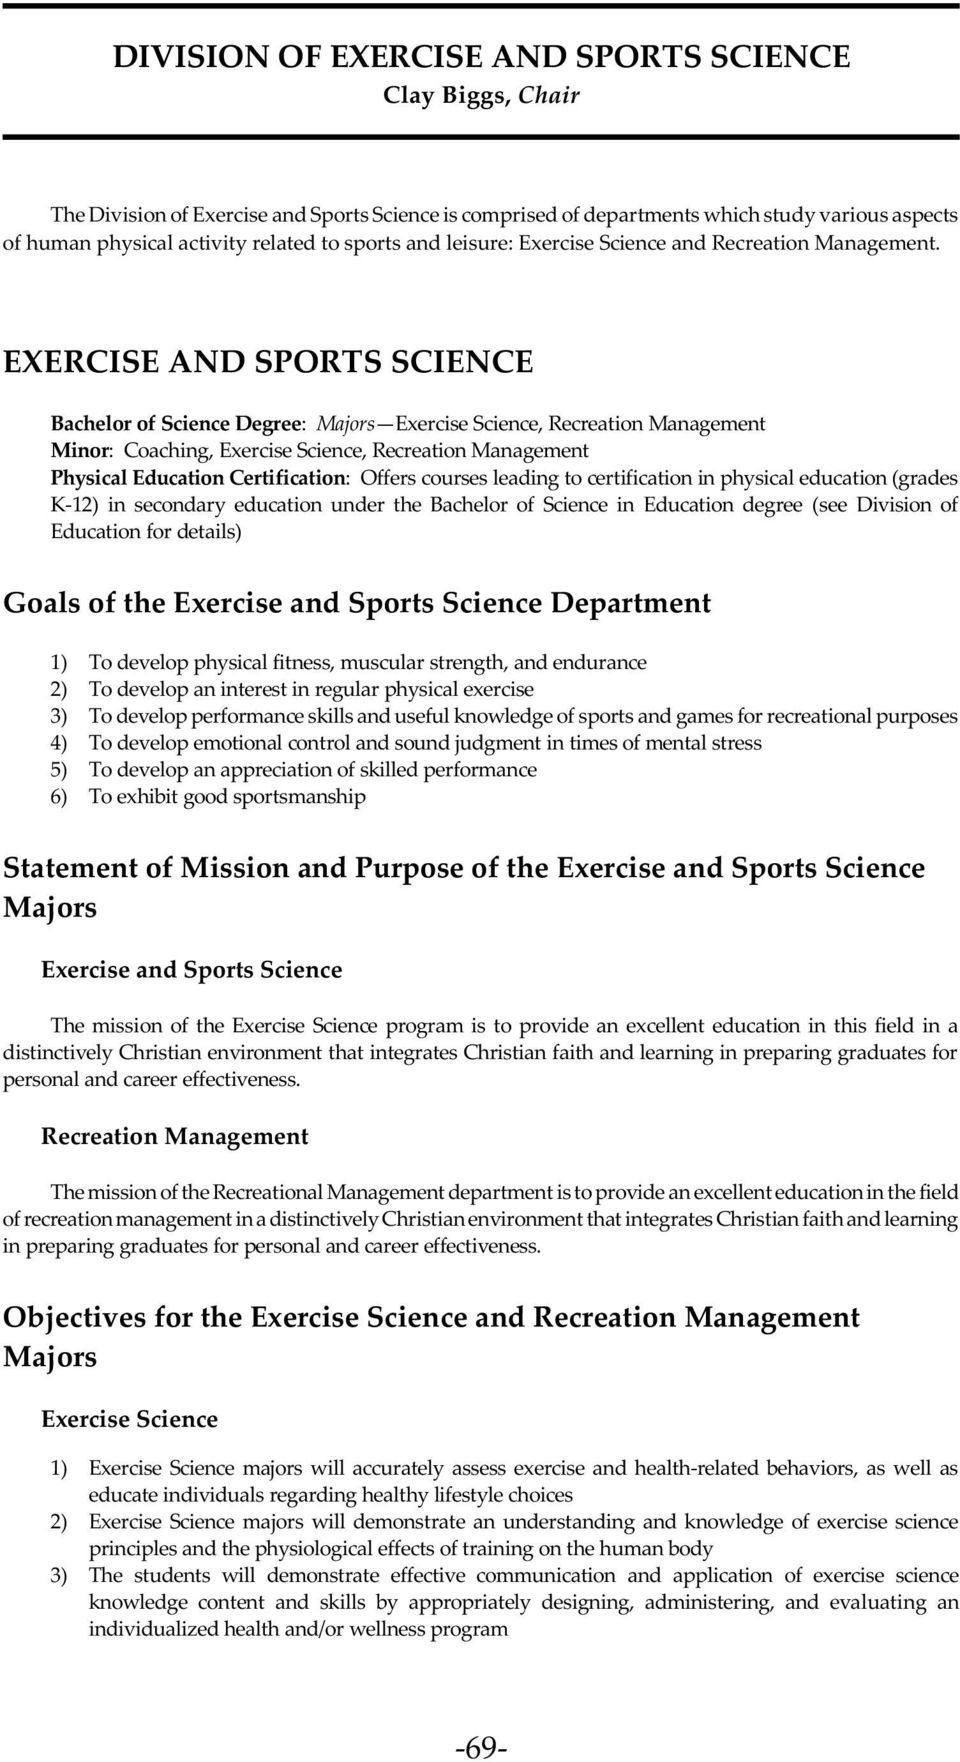 EXERCISE AND SPORTS SCIENCE Bachelor of Science Degree: Majors Exercise Science, Recreation Management Minor: Coaching, Exercise Science, Recreation Management Physical Education Certification: